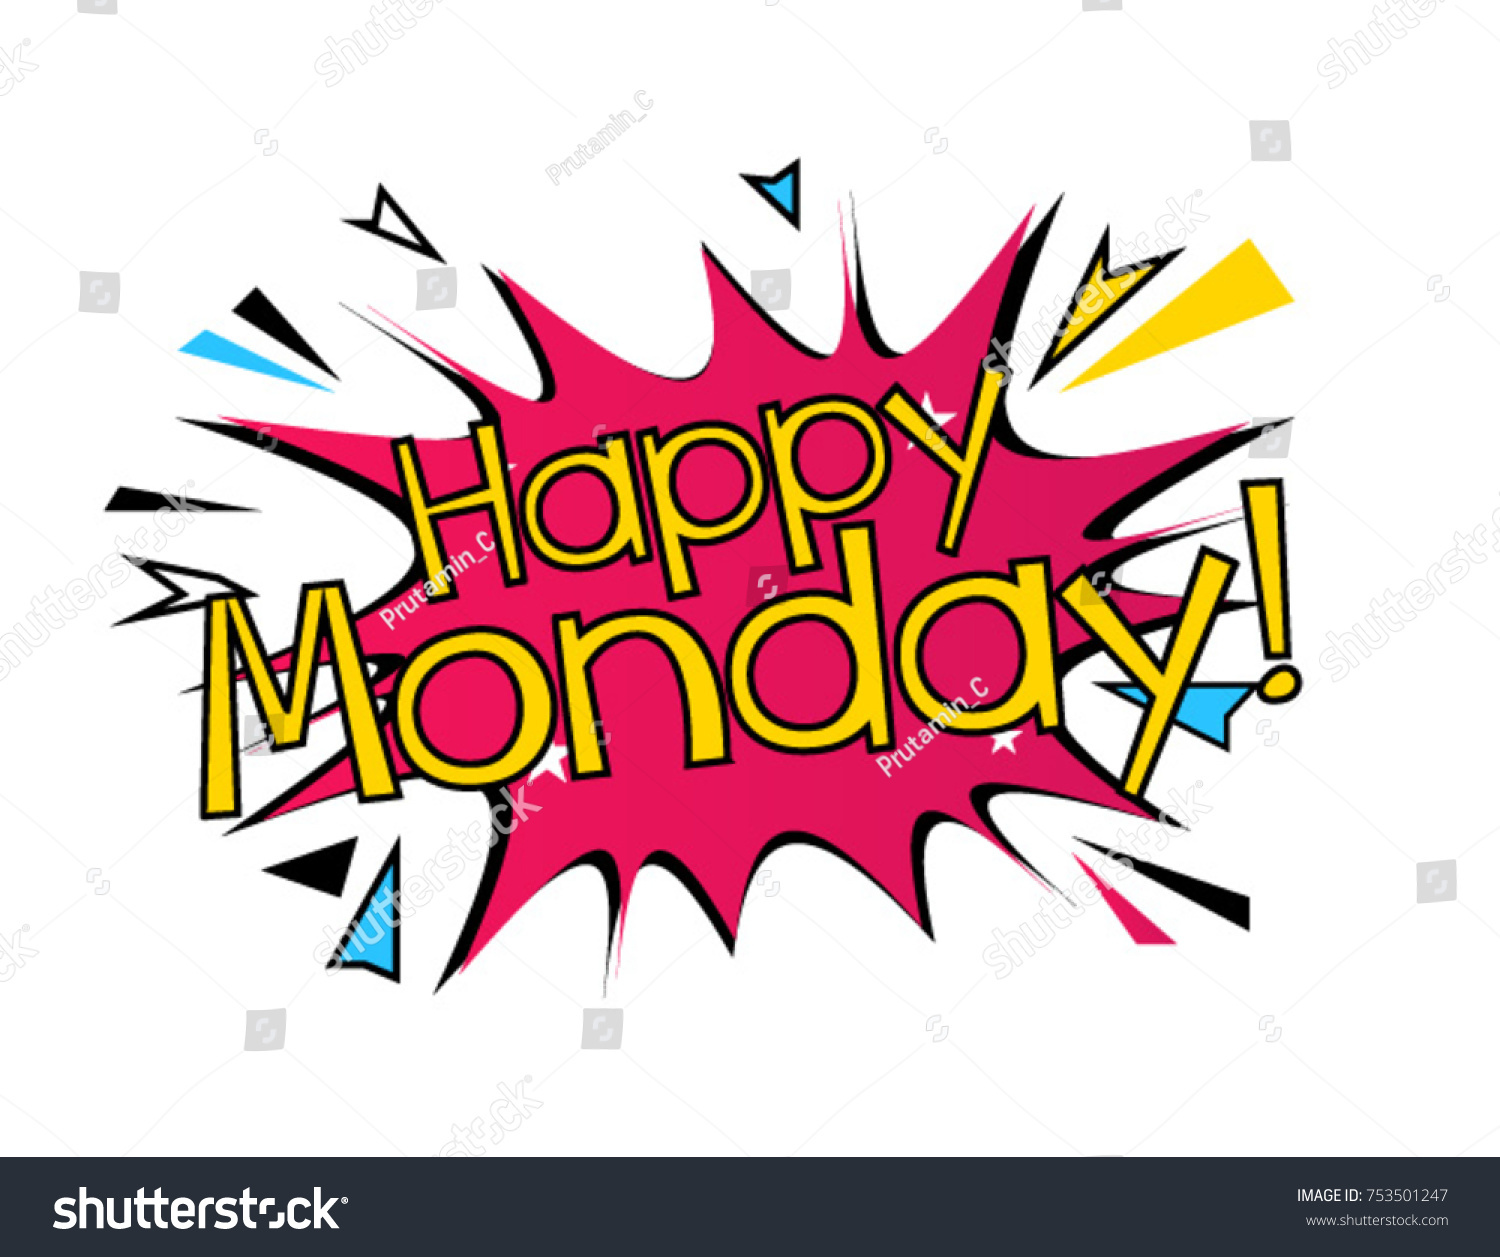 Happy monday beautiful greeting card poster stock vector 753501247 happy monday beautiful greeting card poster m4hsunfo Image collections